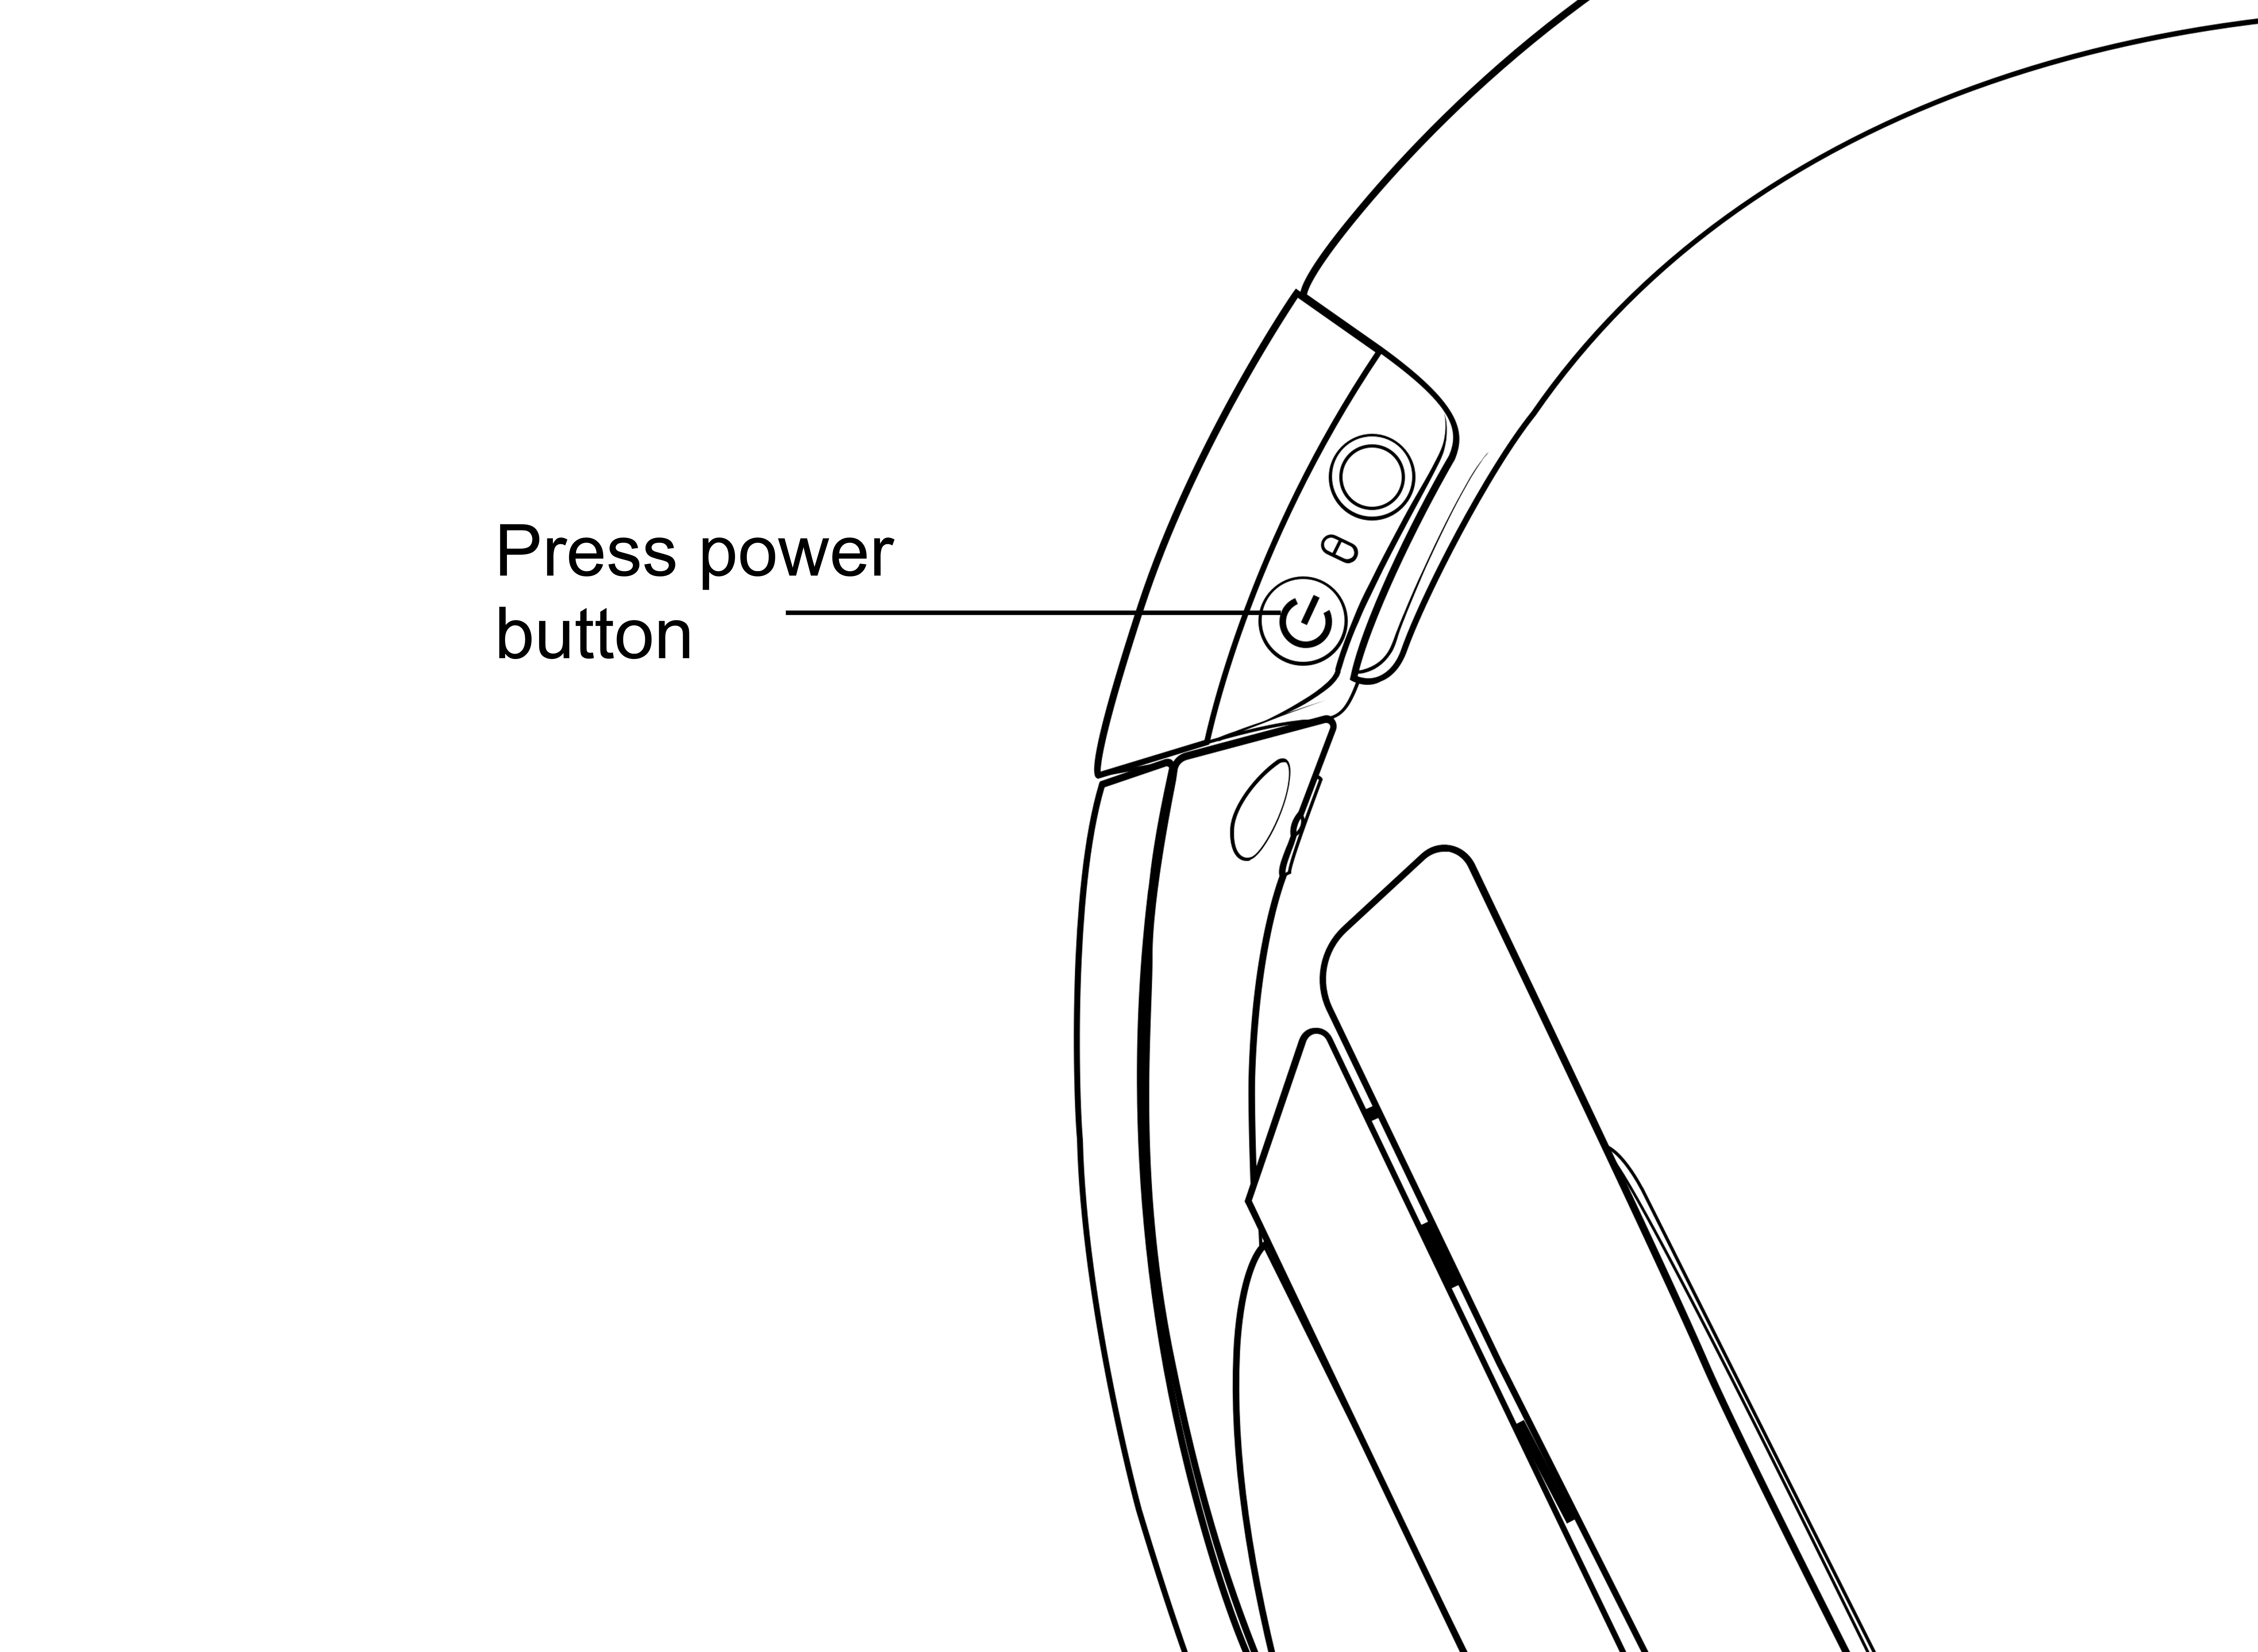 press_power_button.png